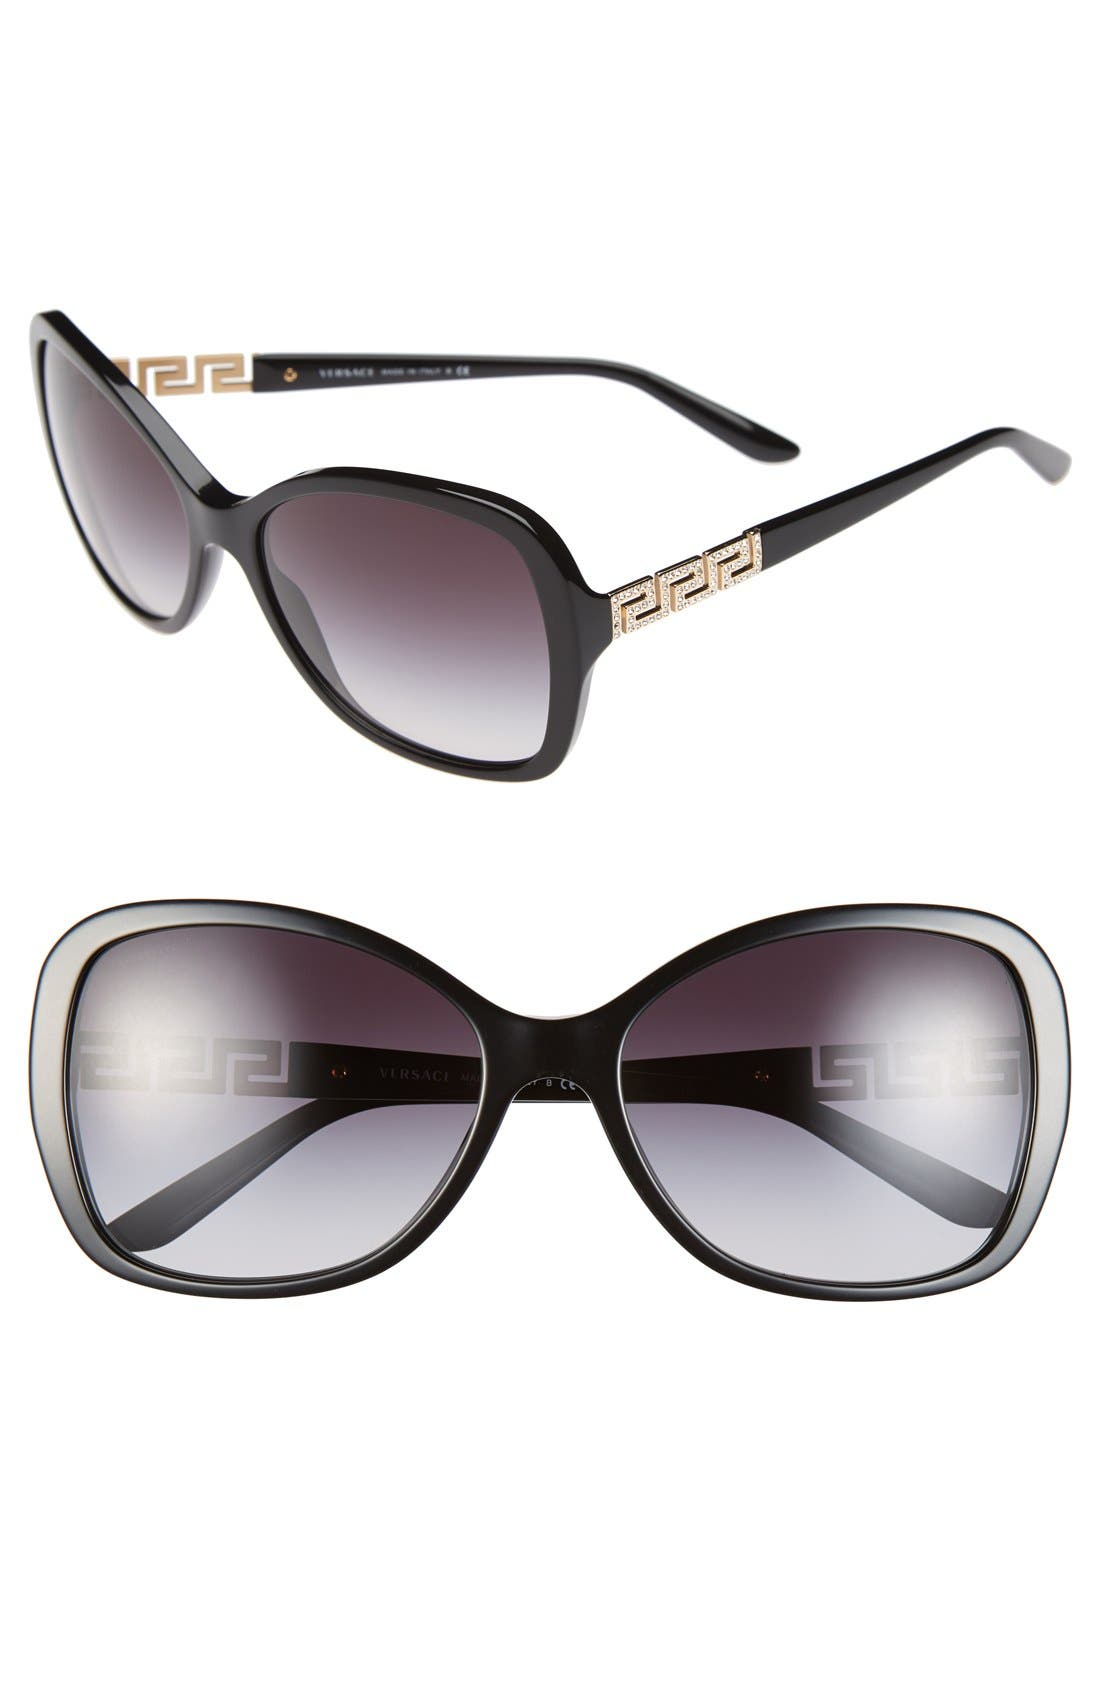 58mm Butterfly Sunglasses,                         Main,                         color, 001